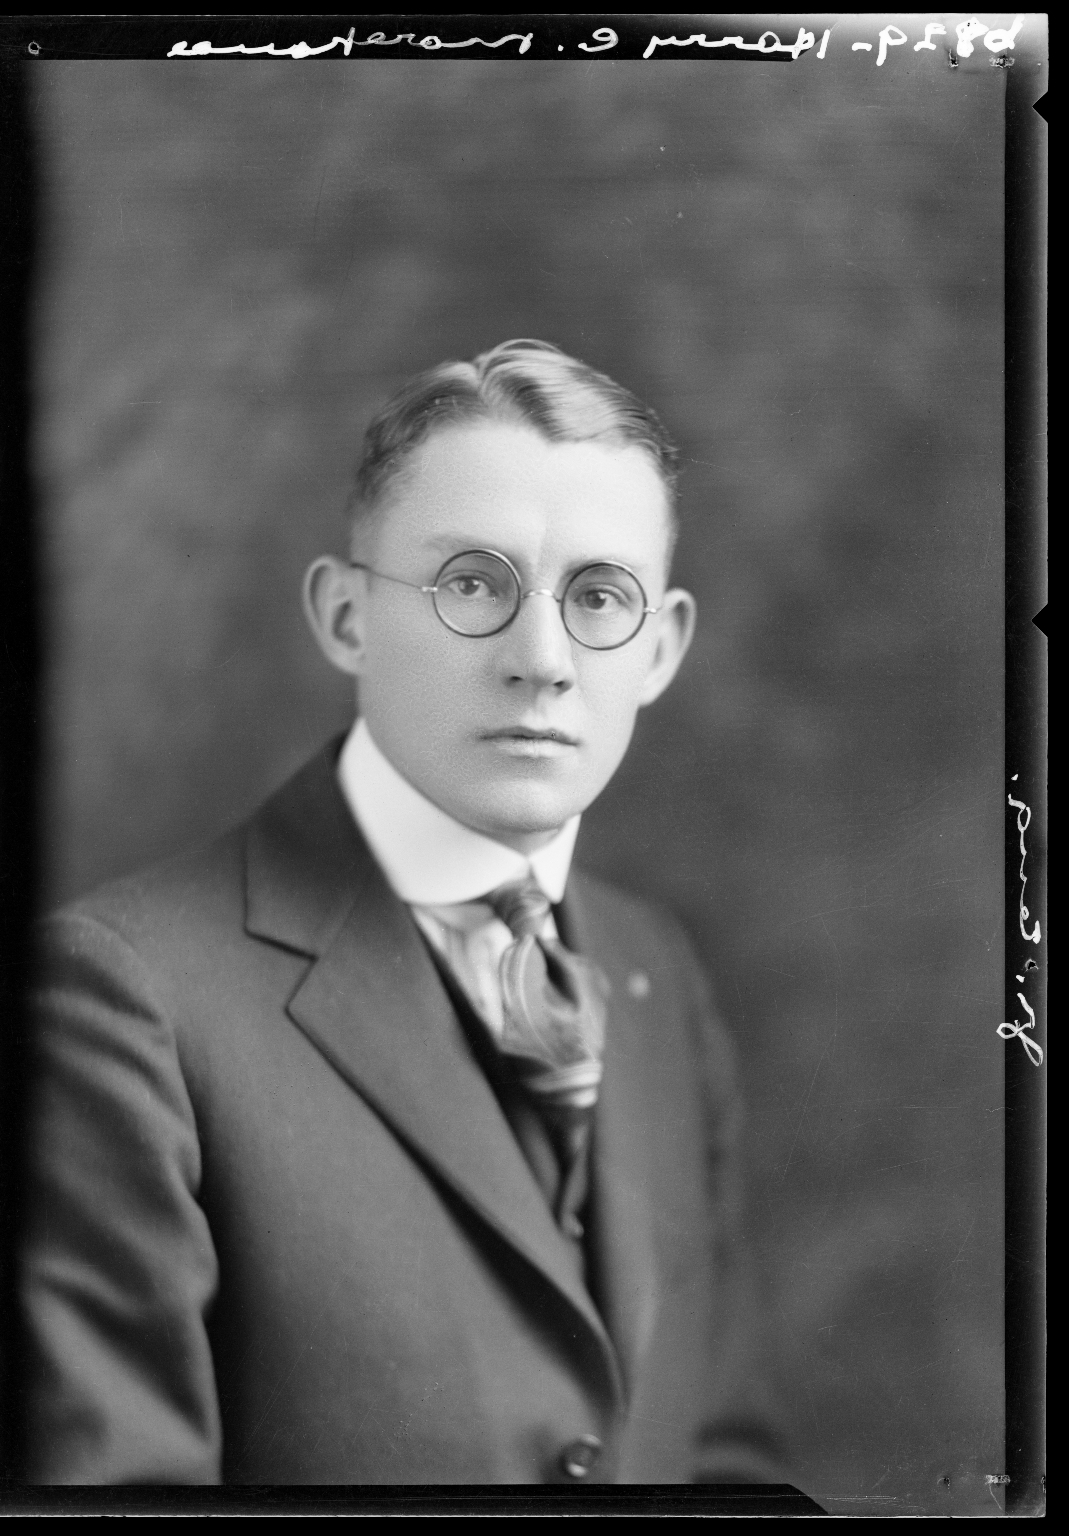 Portraits of Harry Morehouse